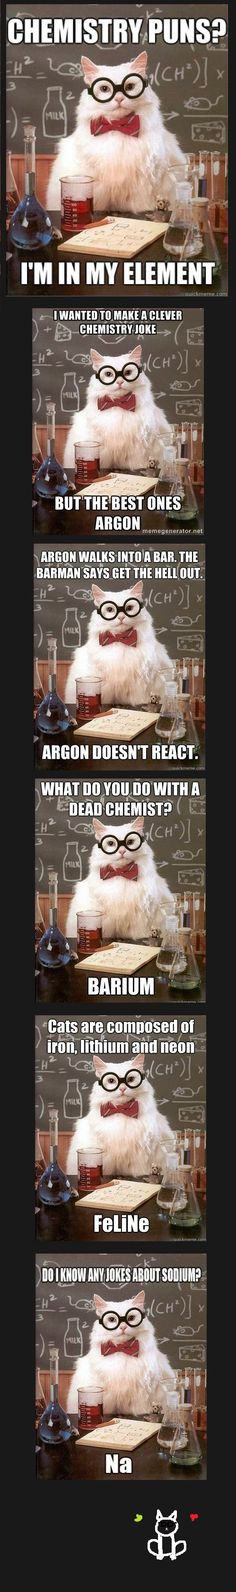 Chemistry puns...these totally made me laugh